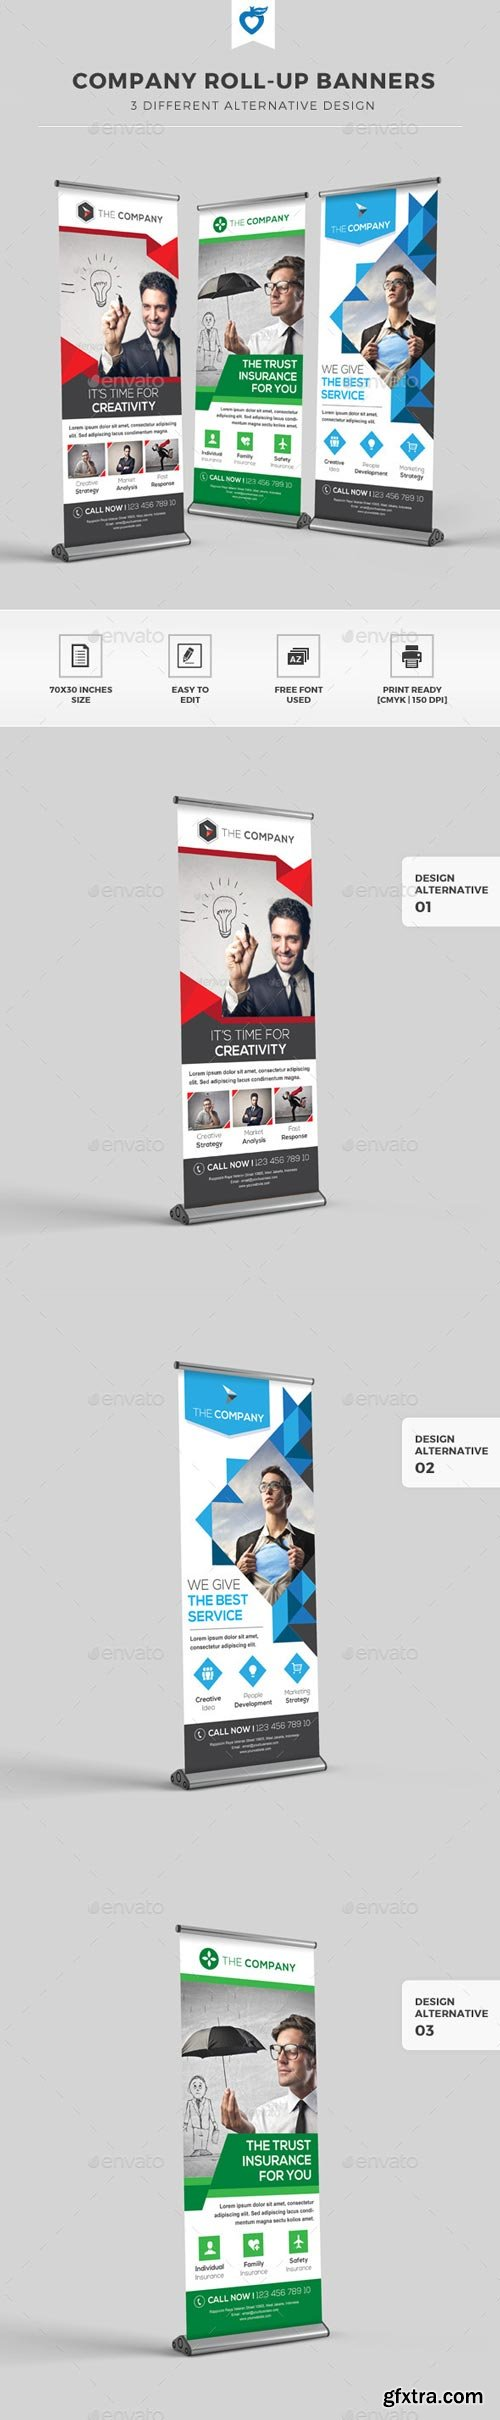 GraphicRiver - Company Roll-up Banners - 11765971